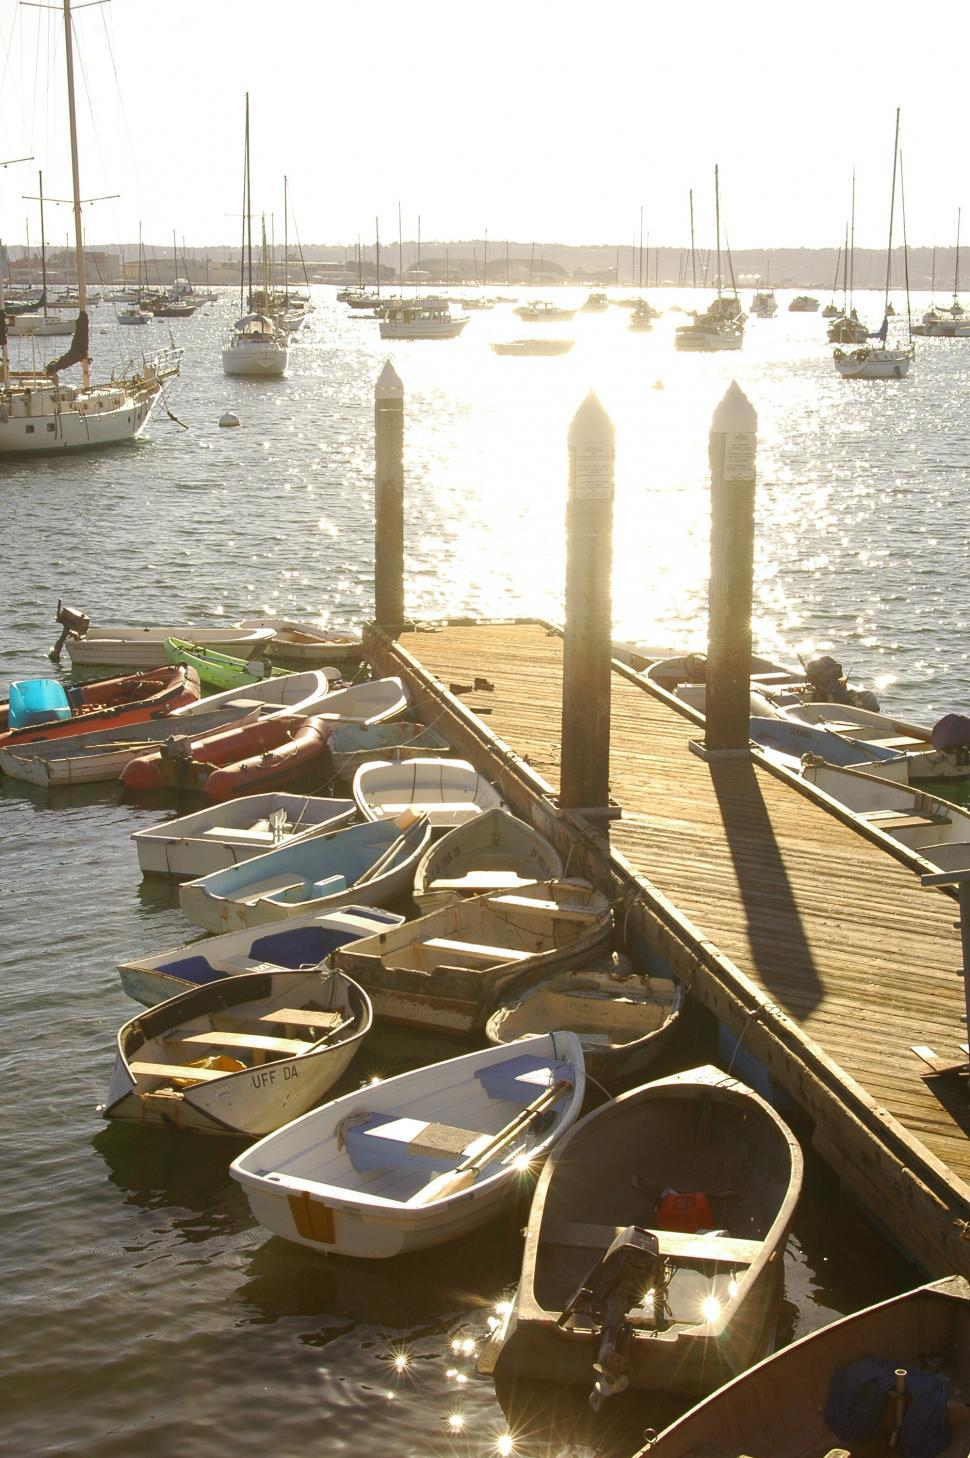 Download Free Stock HD Photo of Row Boats and Sailboats in the Marina Online